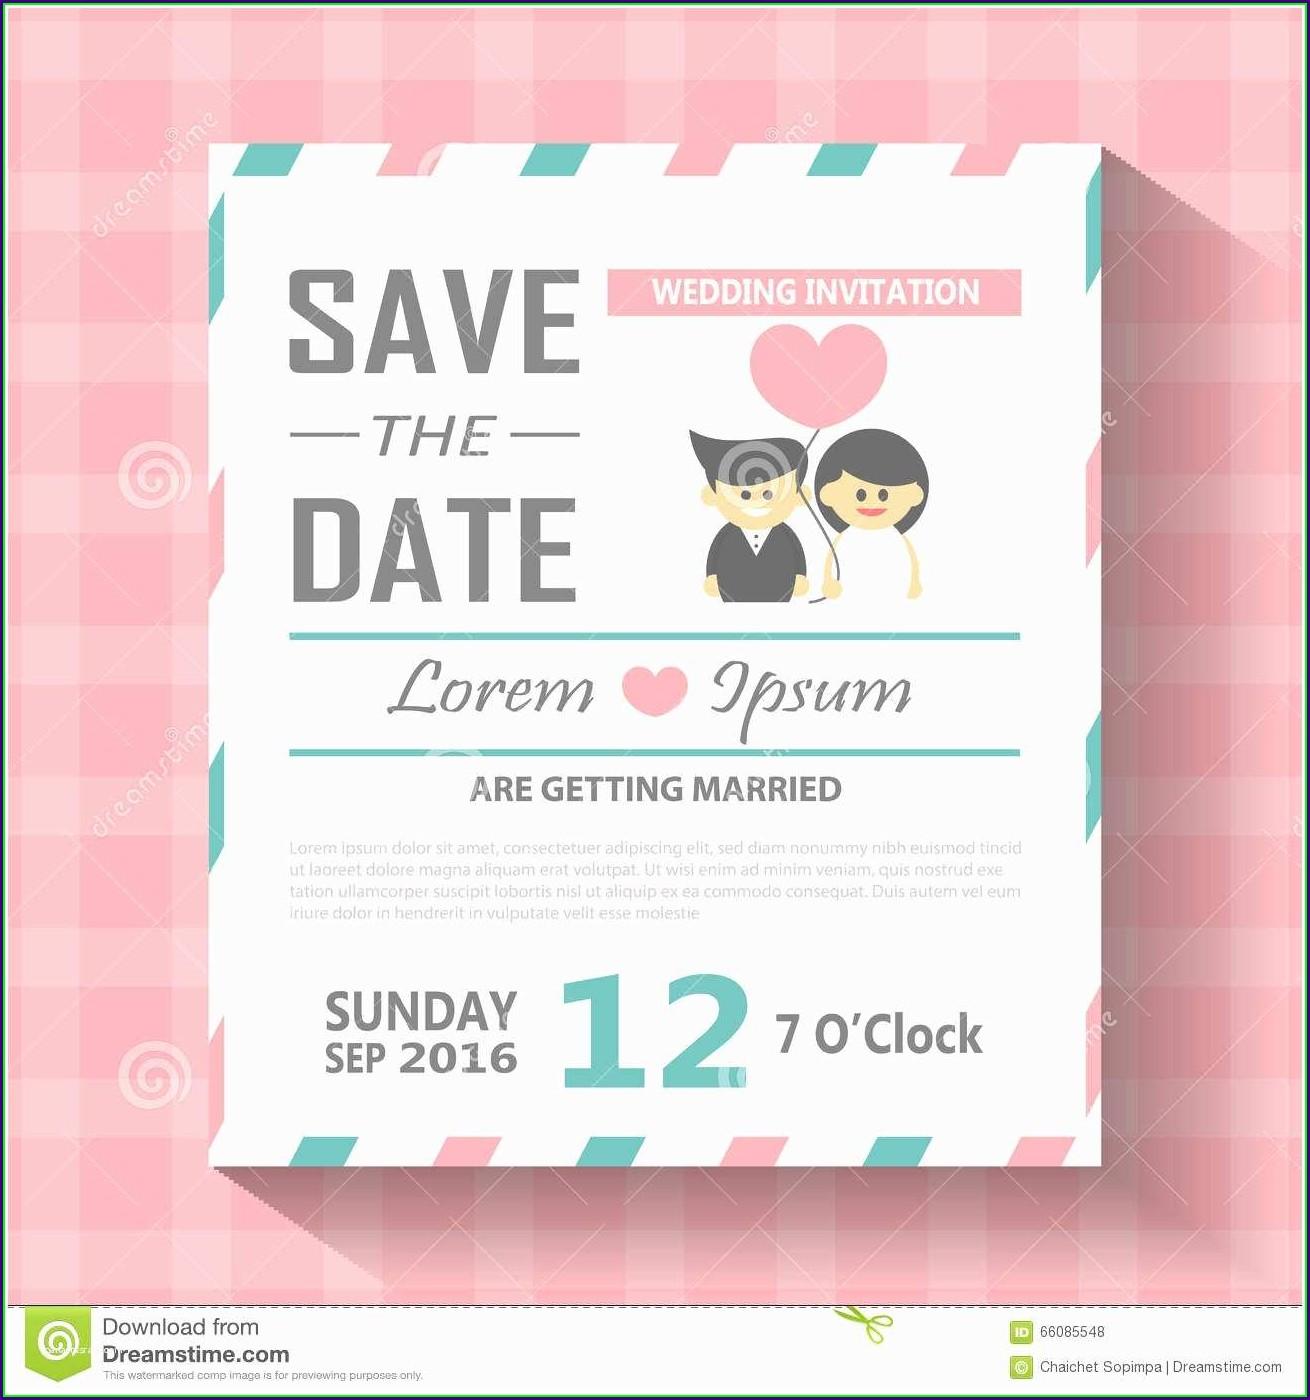 Editable Invitation Card Template Free Download